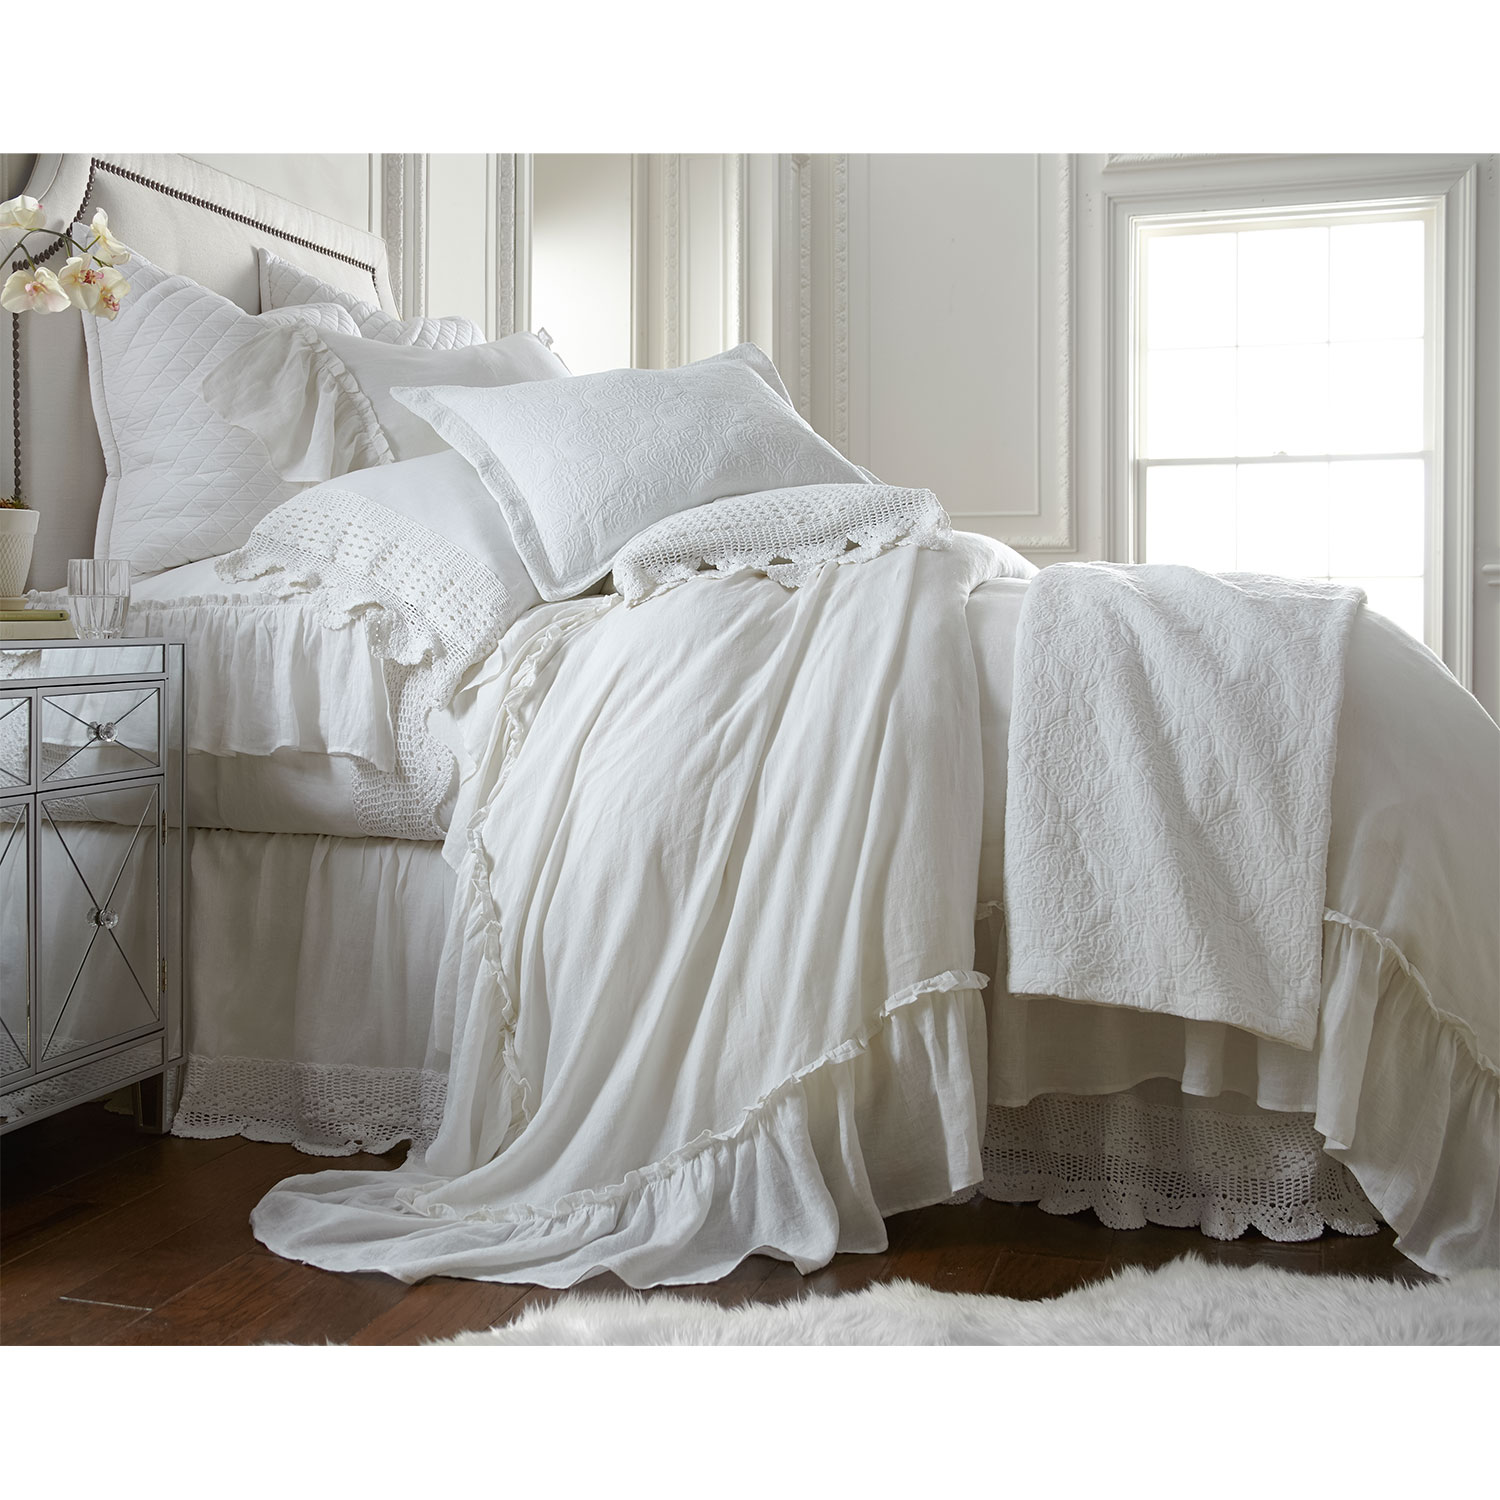 Accent and Occasional Furniture - Caprice Queen Duvet Cover - White